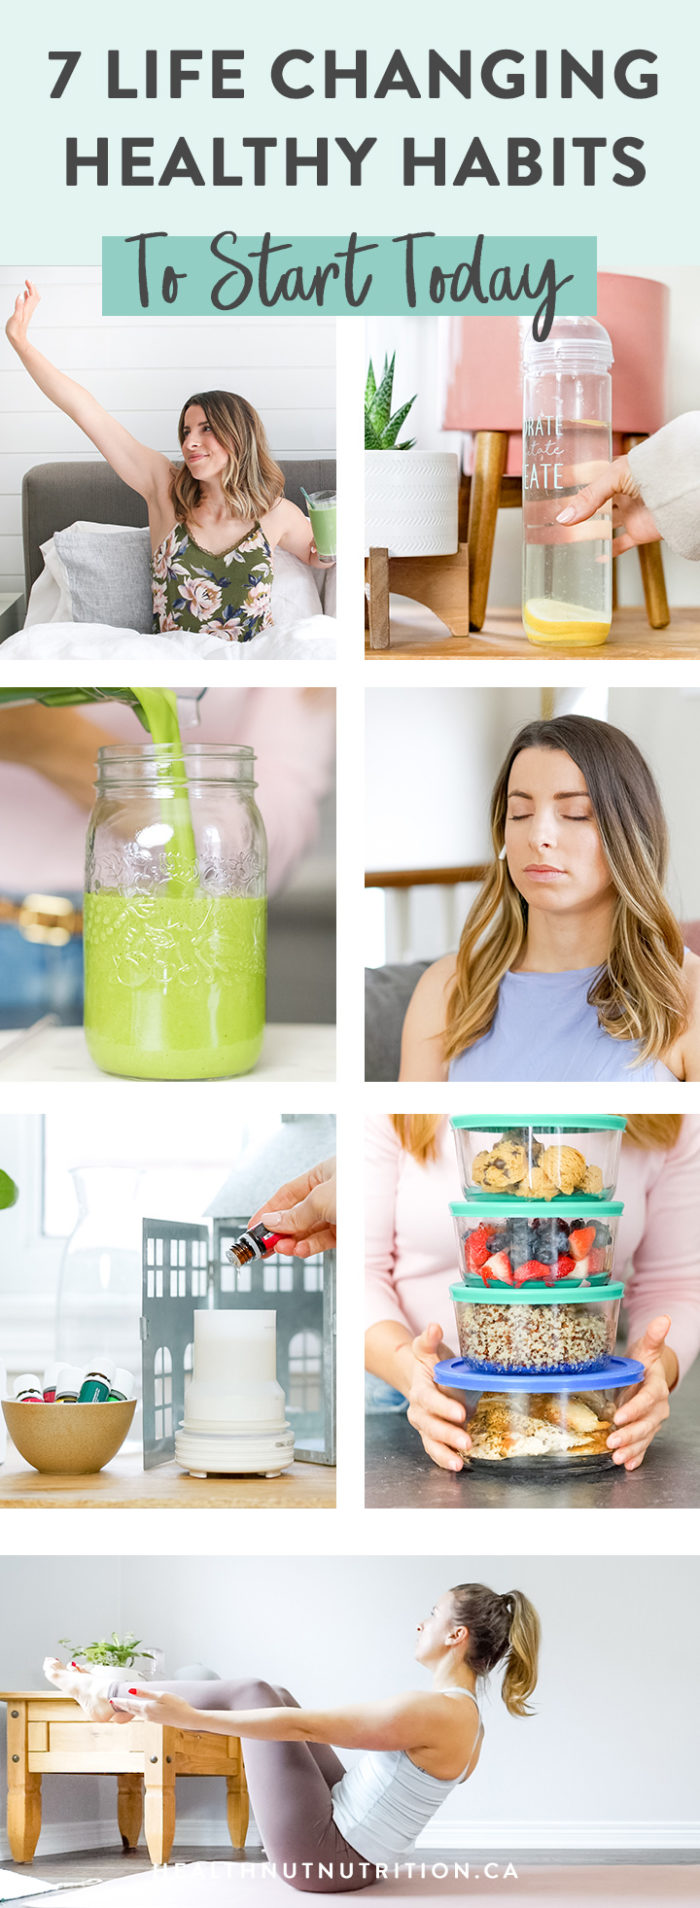 My 7 Life Changing Healthy Habits that are simple, straight forward and realistic and will have you feeling your best in your day-to-day life!